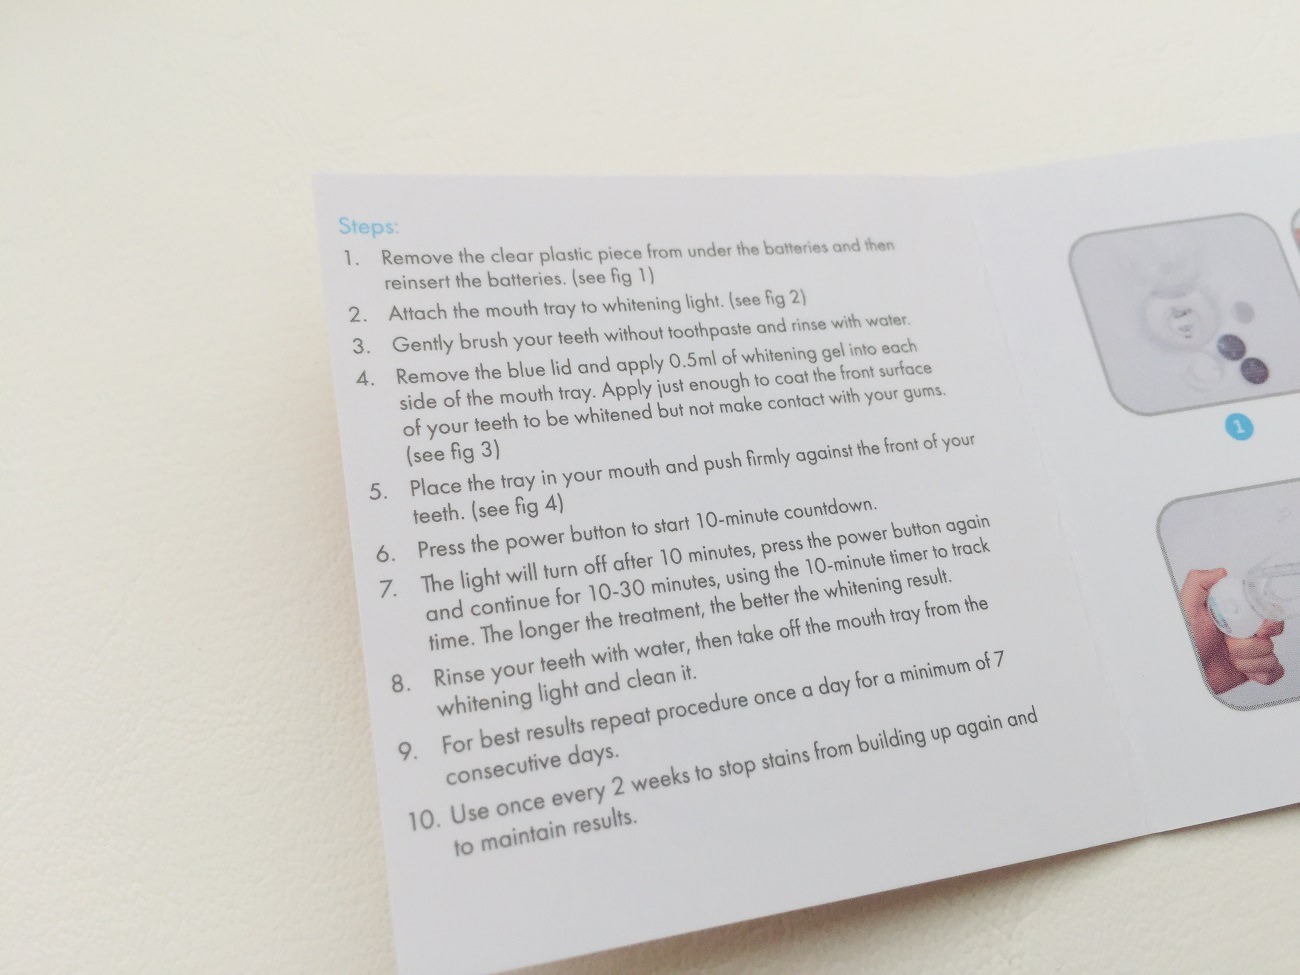 All the 10 instruction steps by SmilePro in their kit